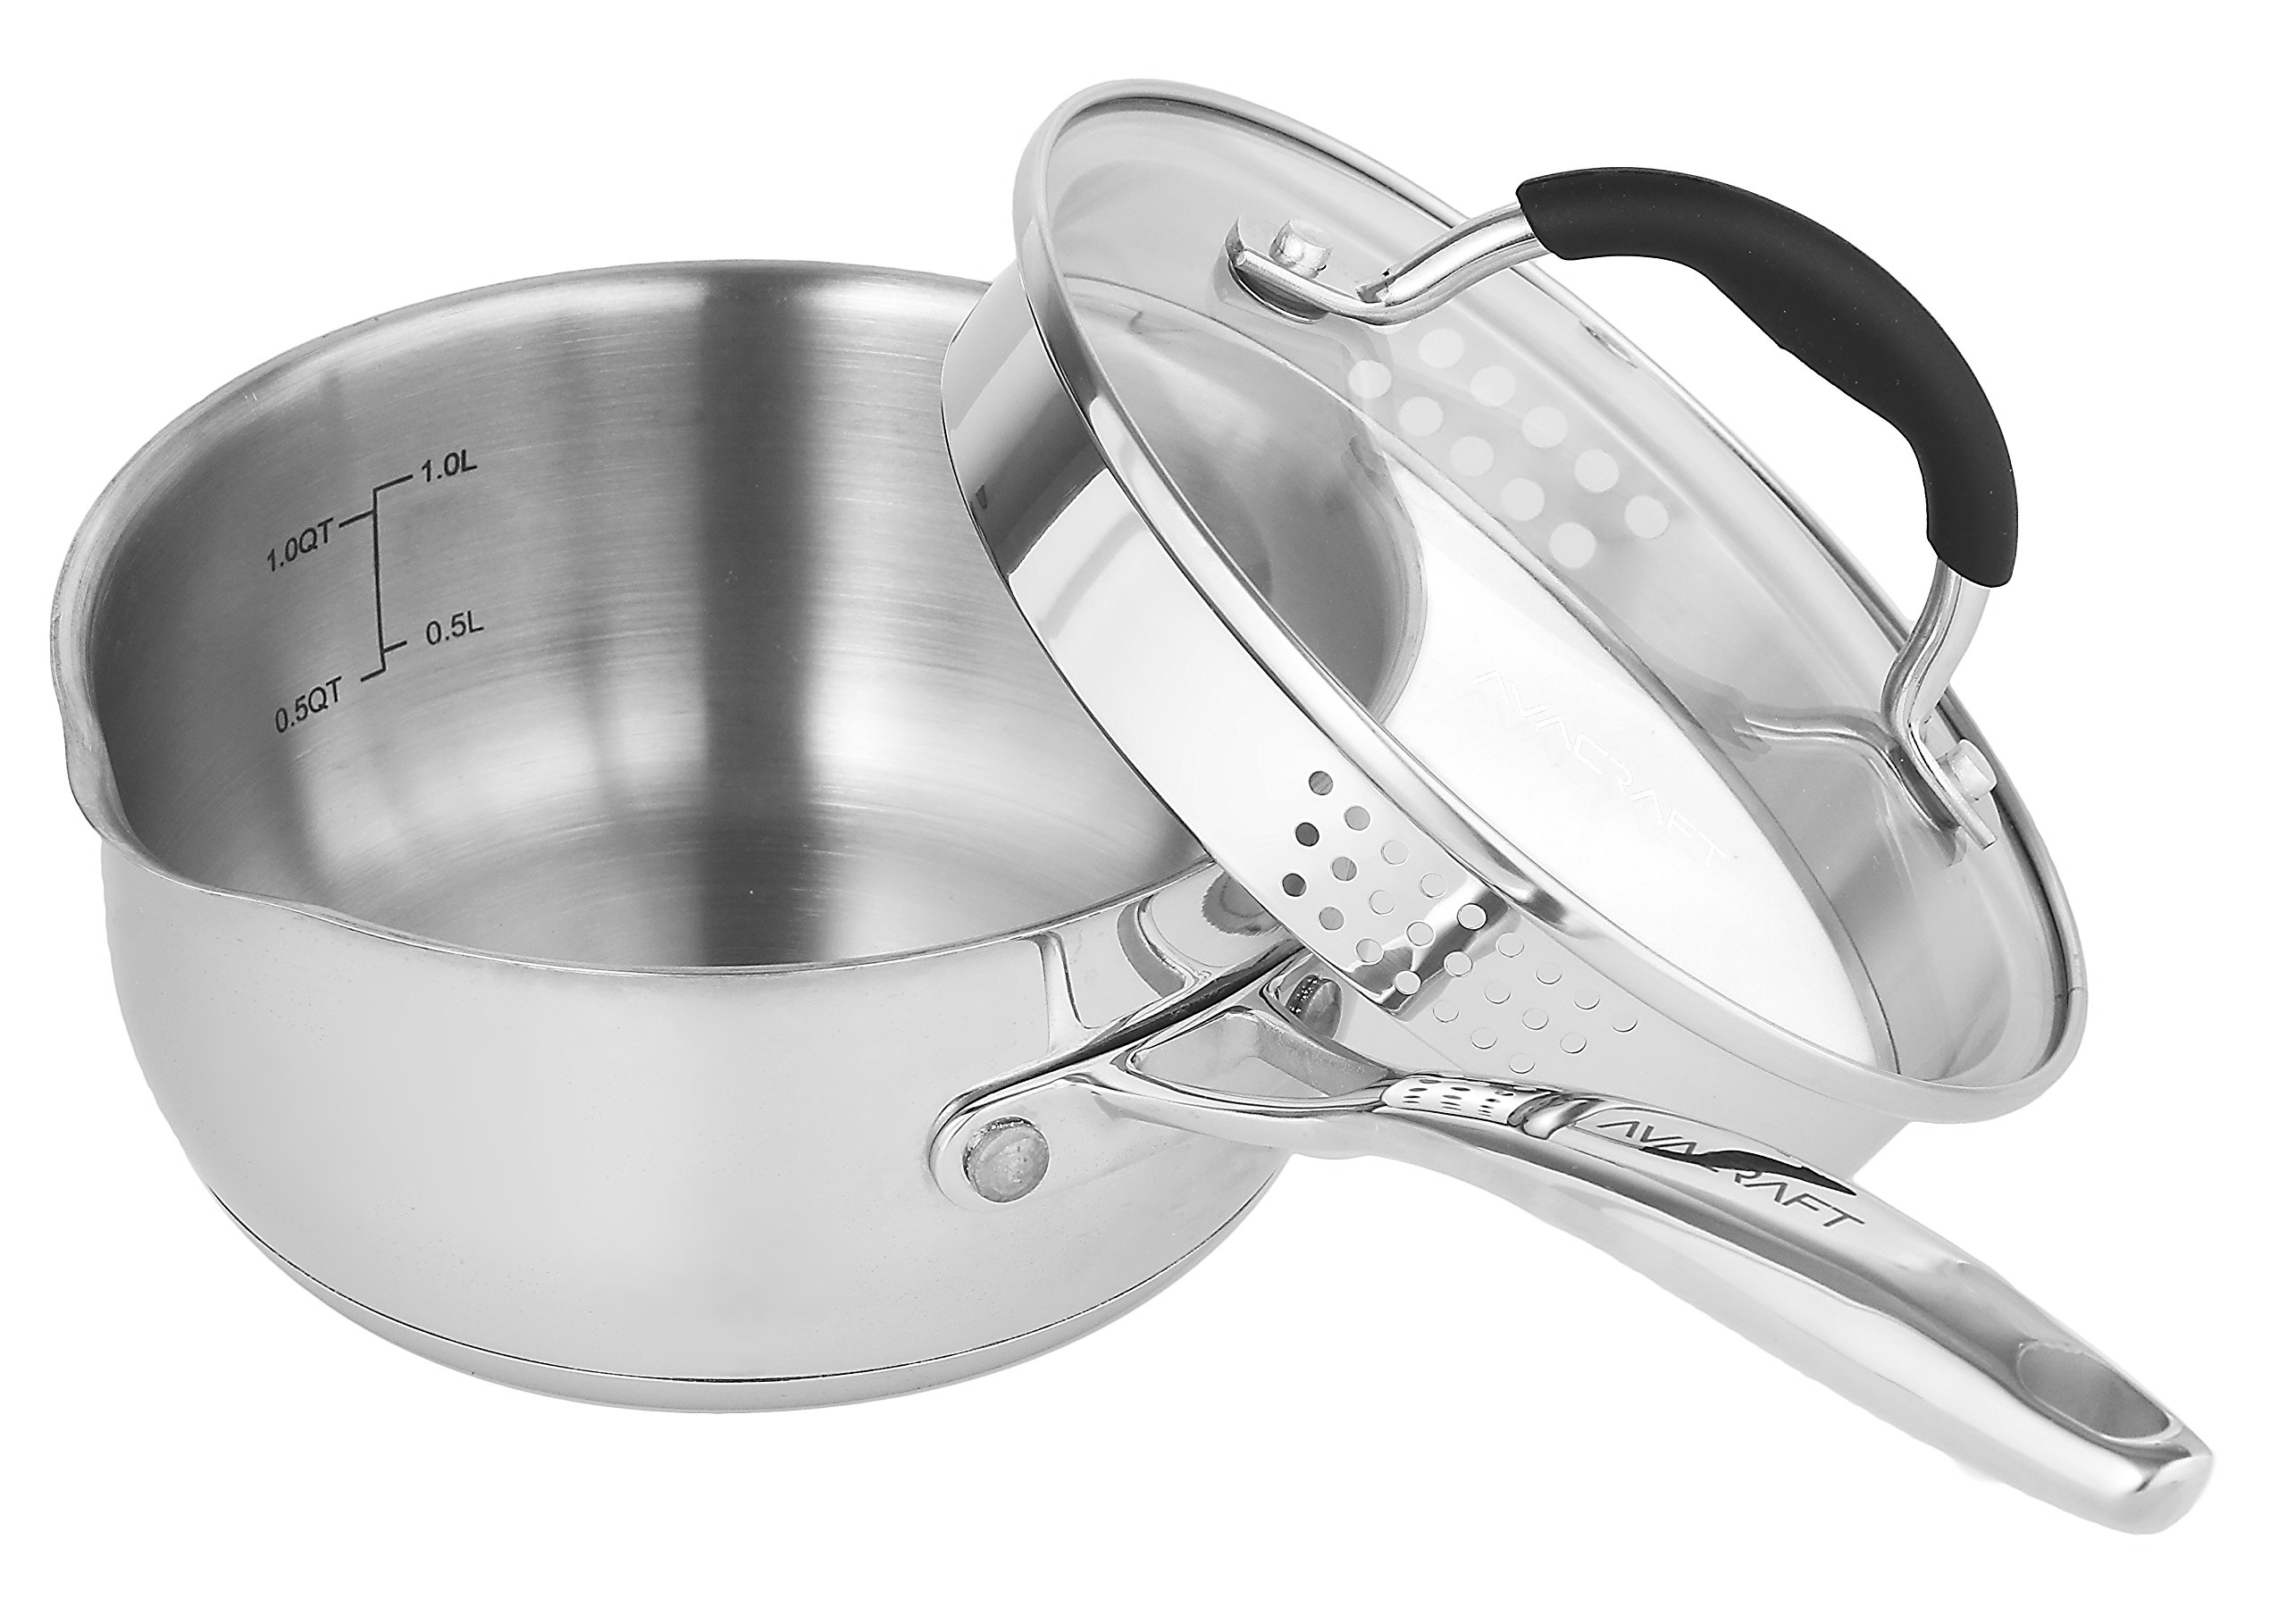 AVACRAFT Stainless Steel Saucepan with Glass Lid, Strainer Lid, Two Side Spouts for Easy Pour with Ergonomic Handle, Multipurpose Sauce Pan with Lid, Sauce Pot (1.5 Quart)